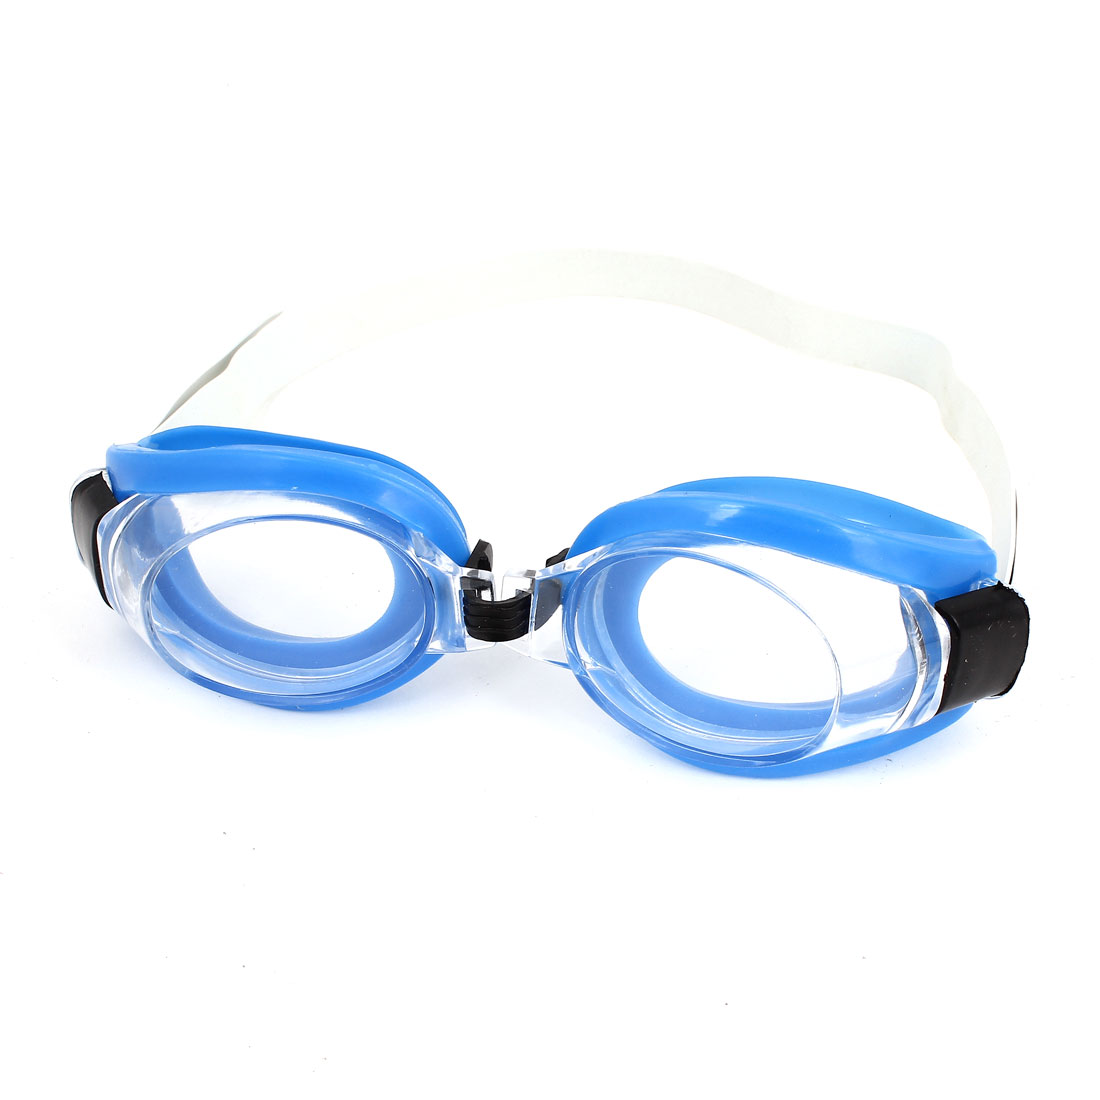 4 in 1 Ear Plugs Nose Clip Adjustable Strap Blue Swim Goggles Set